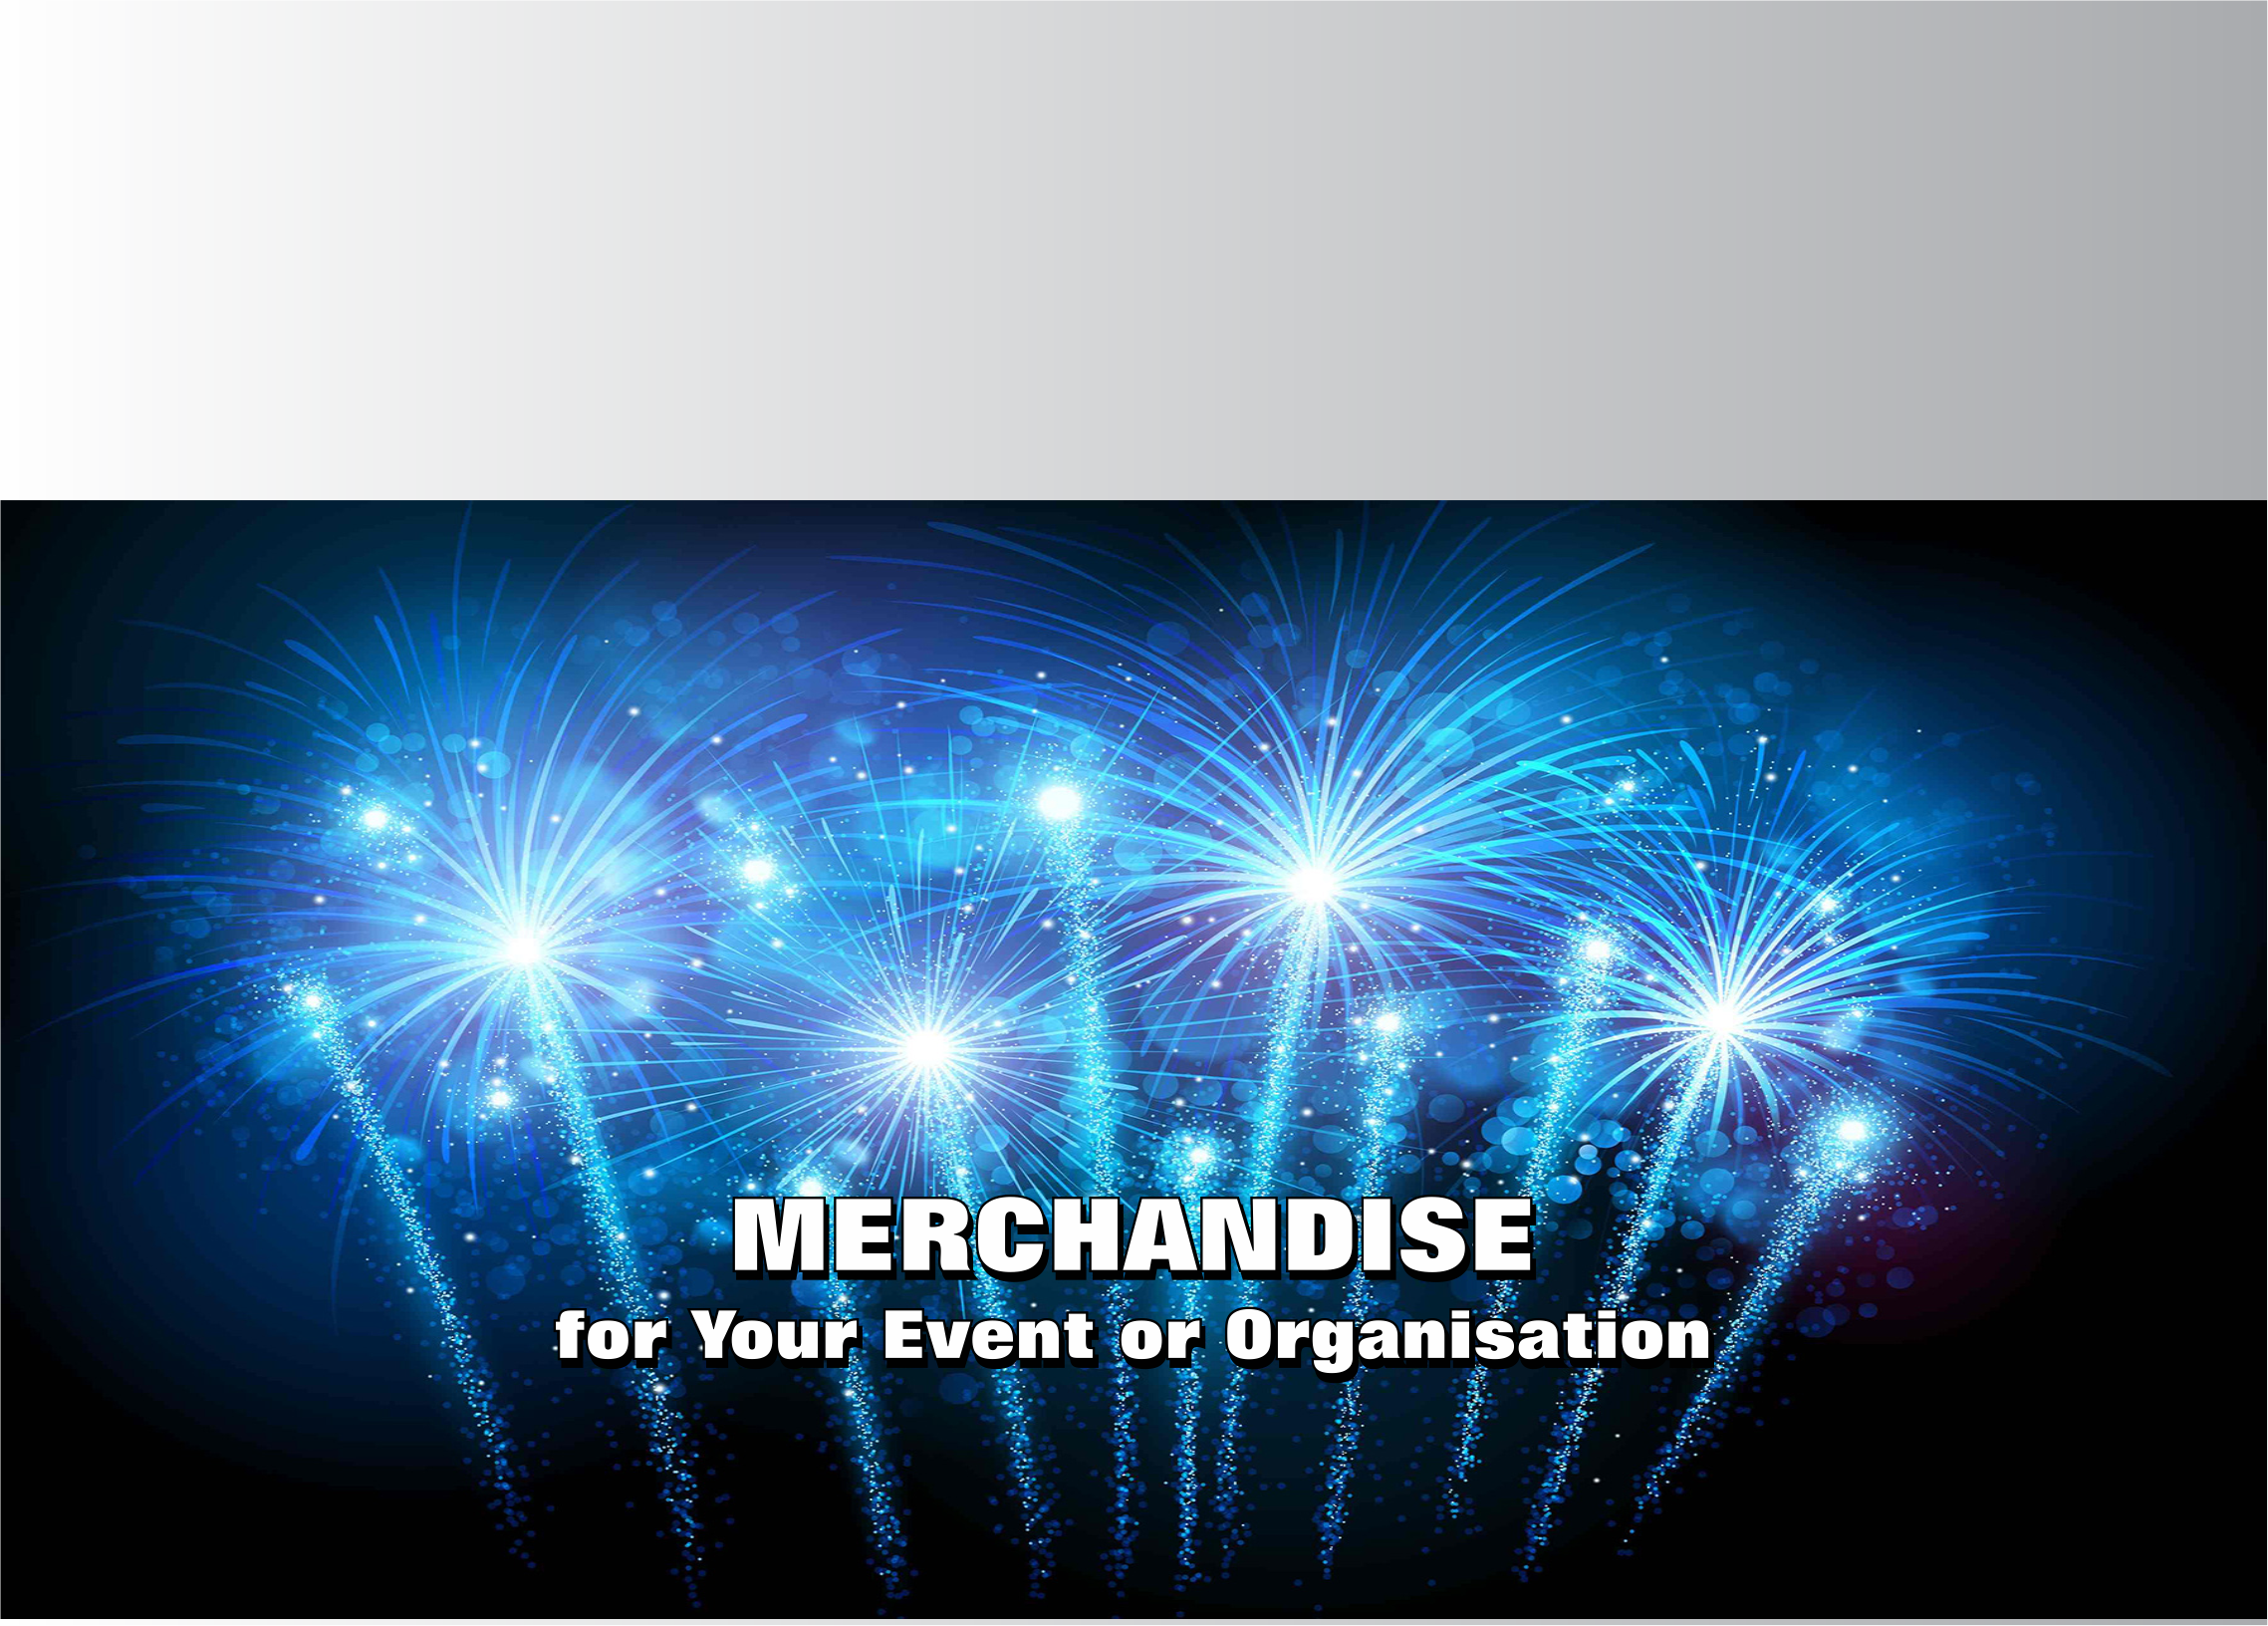 Merchandise for your Event or Organisation